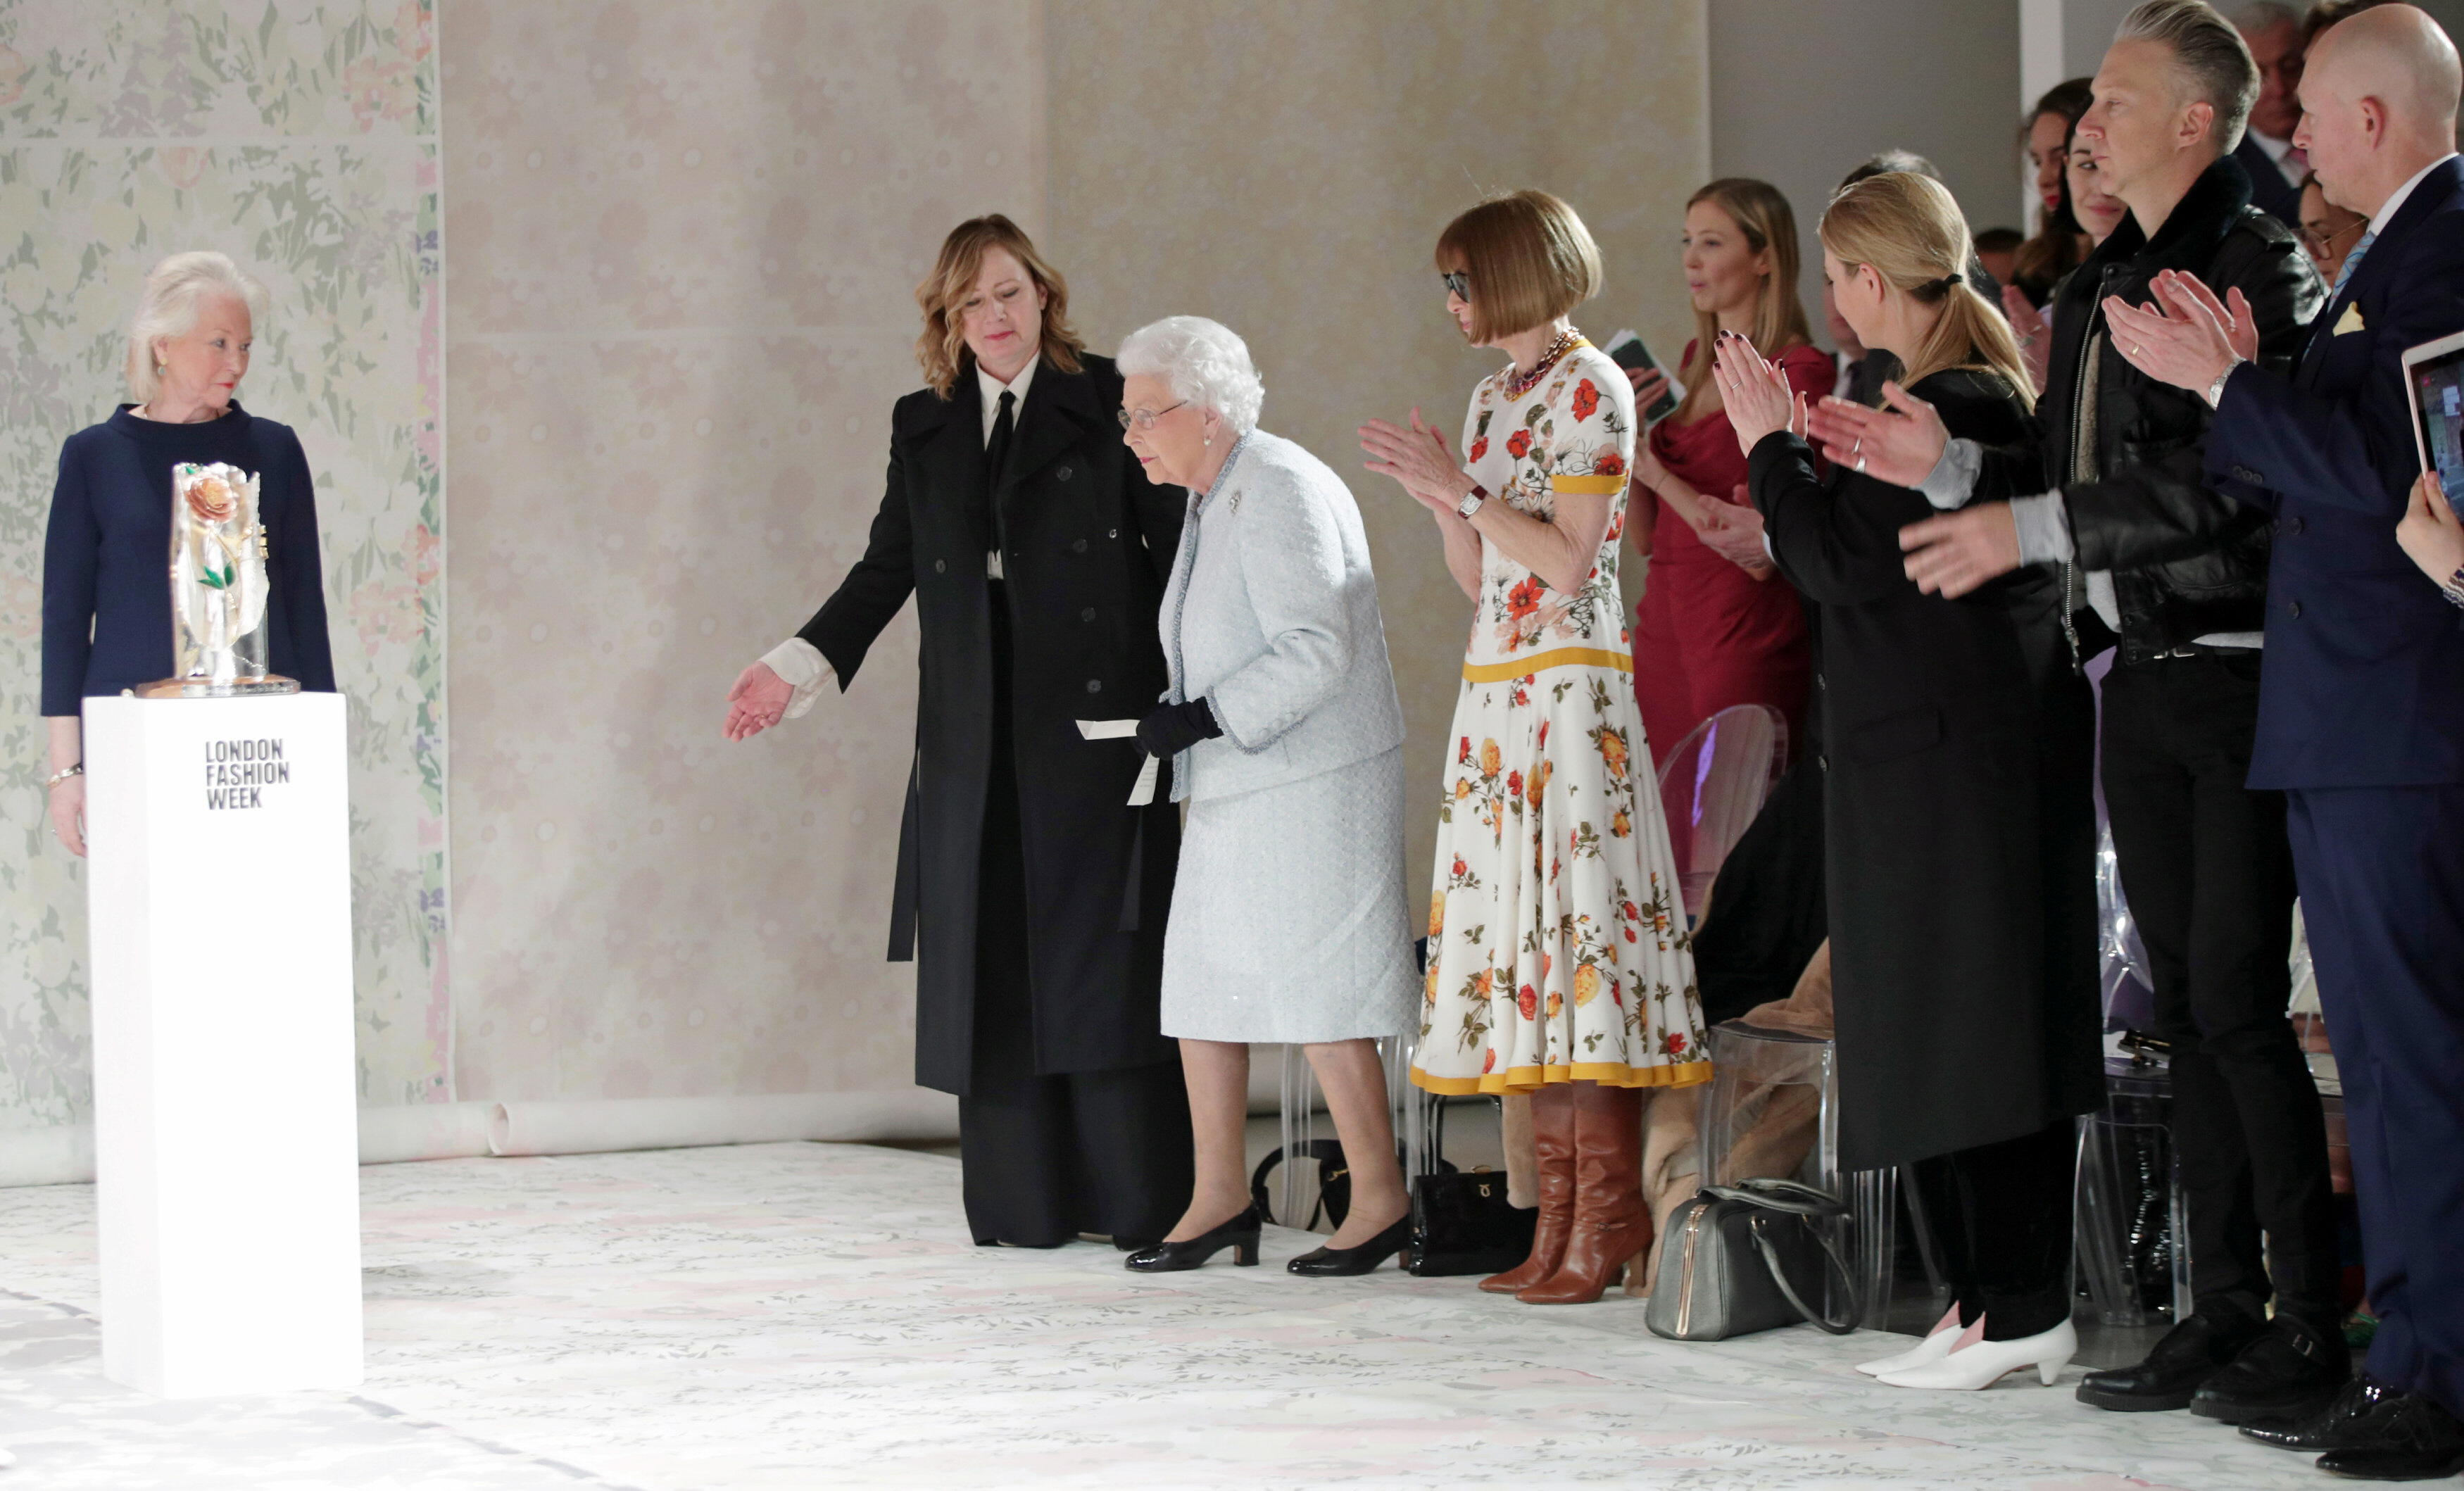 Britain's Queen Elizabeth II sits next to Vogue Editor-in-Chief Anna Wintour as they view Richard Quinn's runway show before presenting him with the inaugural Queen Elizabeth II Award for British Design as she visits London Fashion Week, in London, Britain February 20, 2018. REUTERS/Yui Mok/Pool